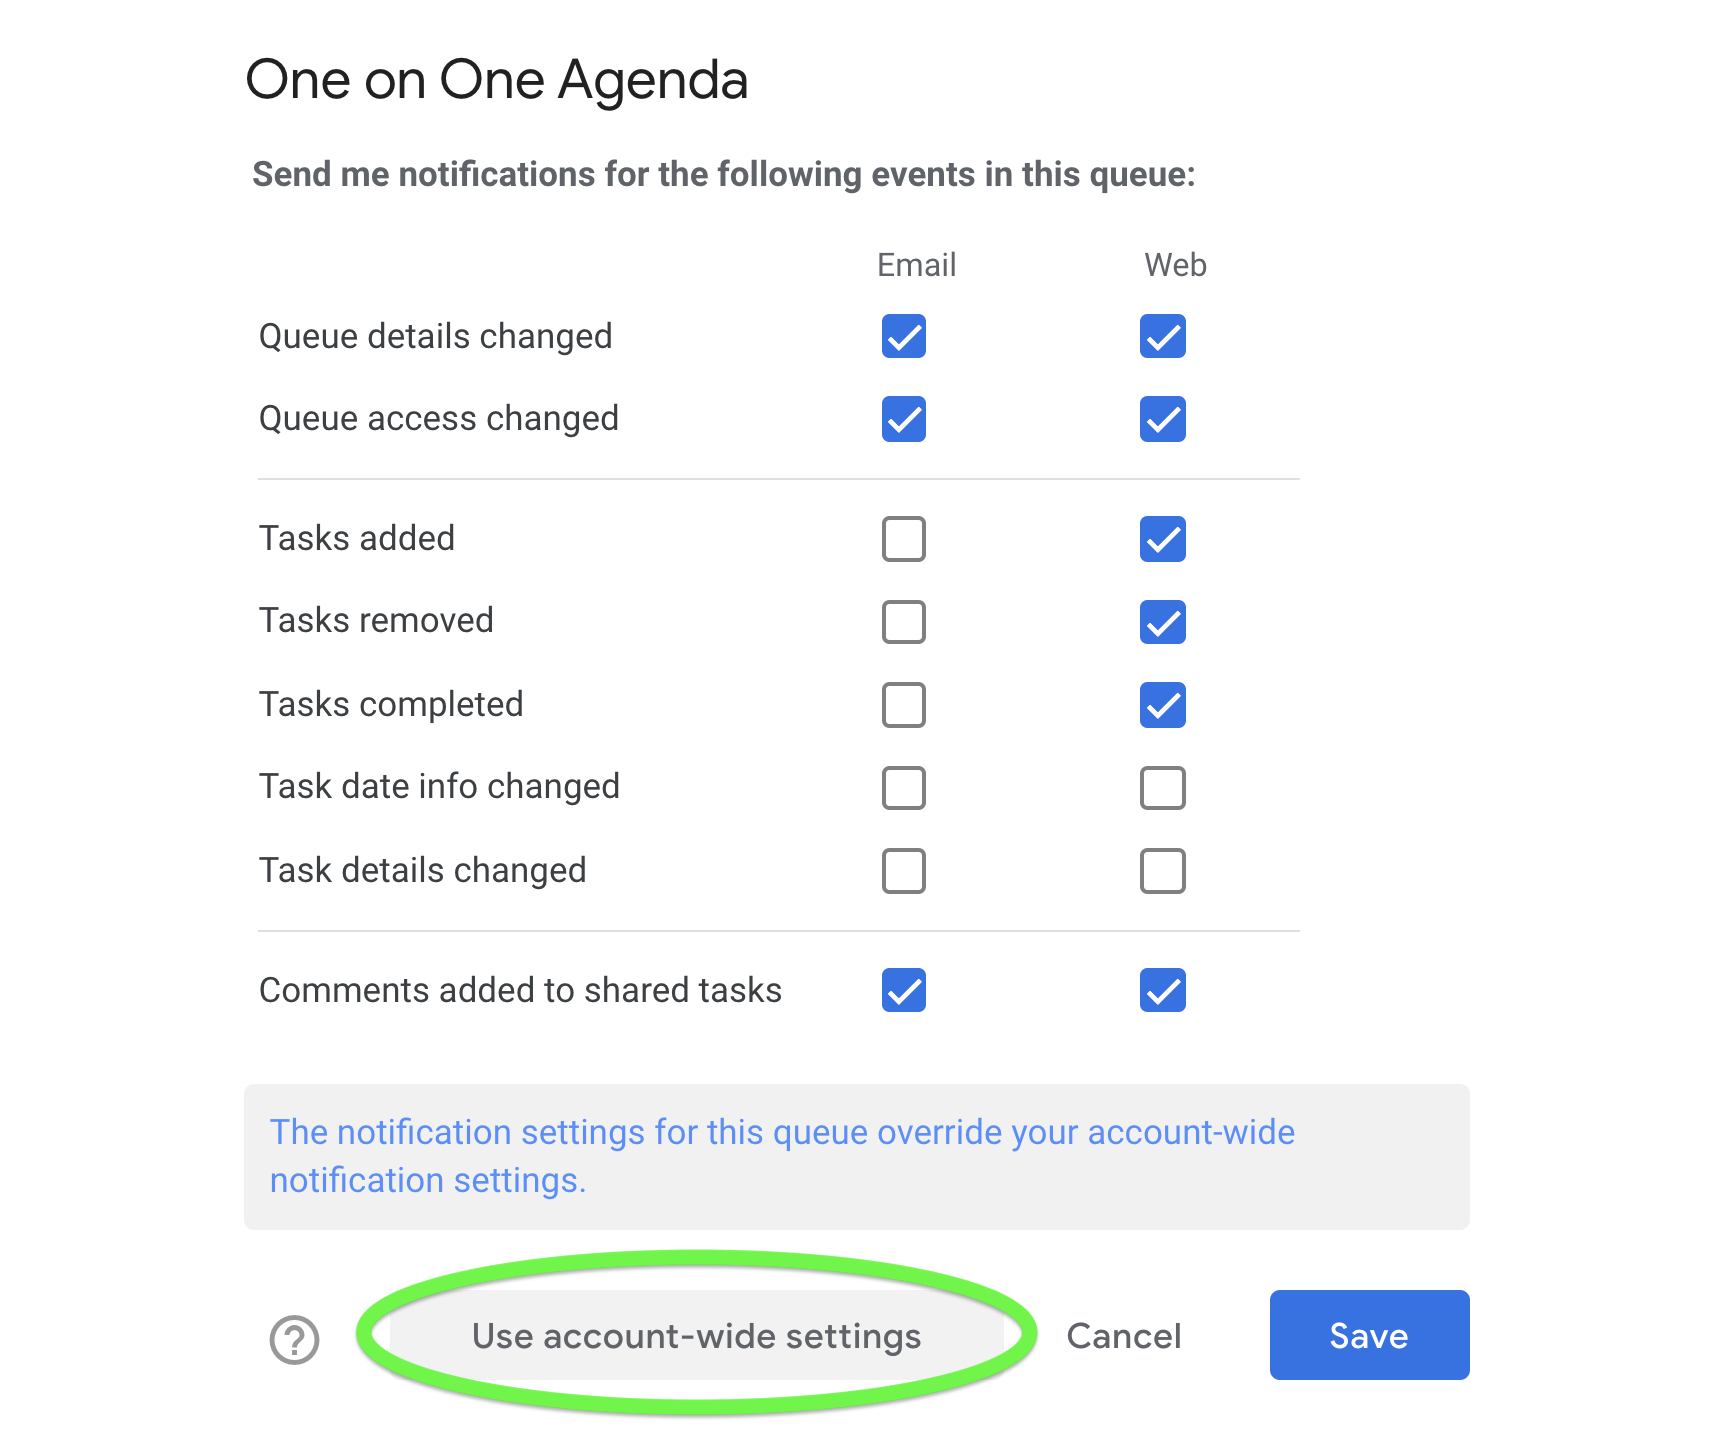 Clear a specific queue's notification settings so they align with your account-wide settings